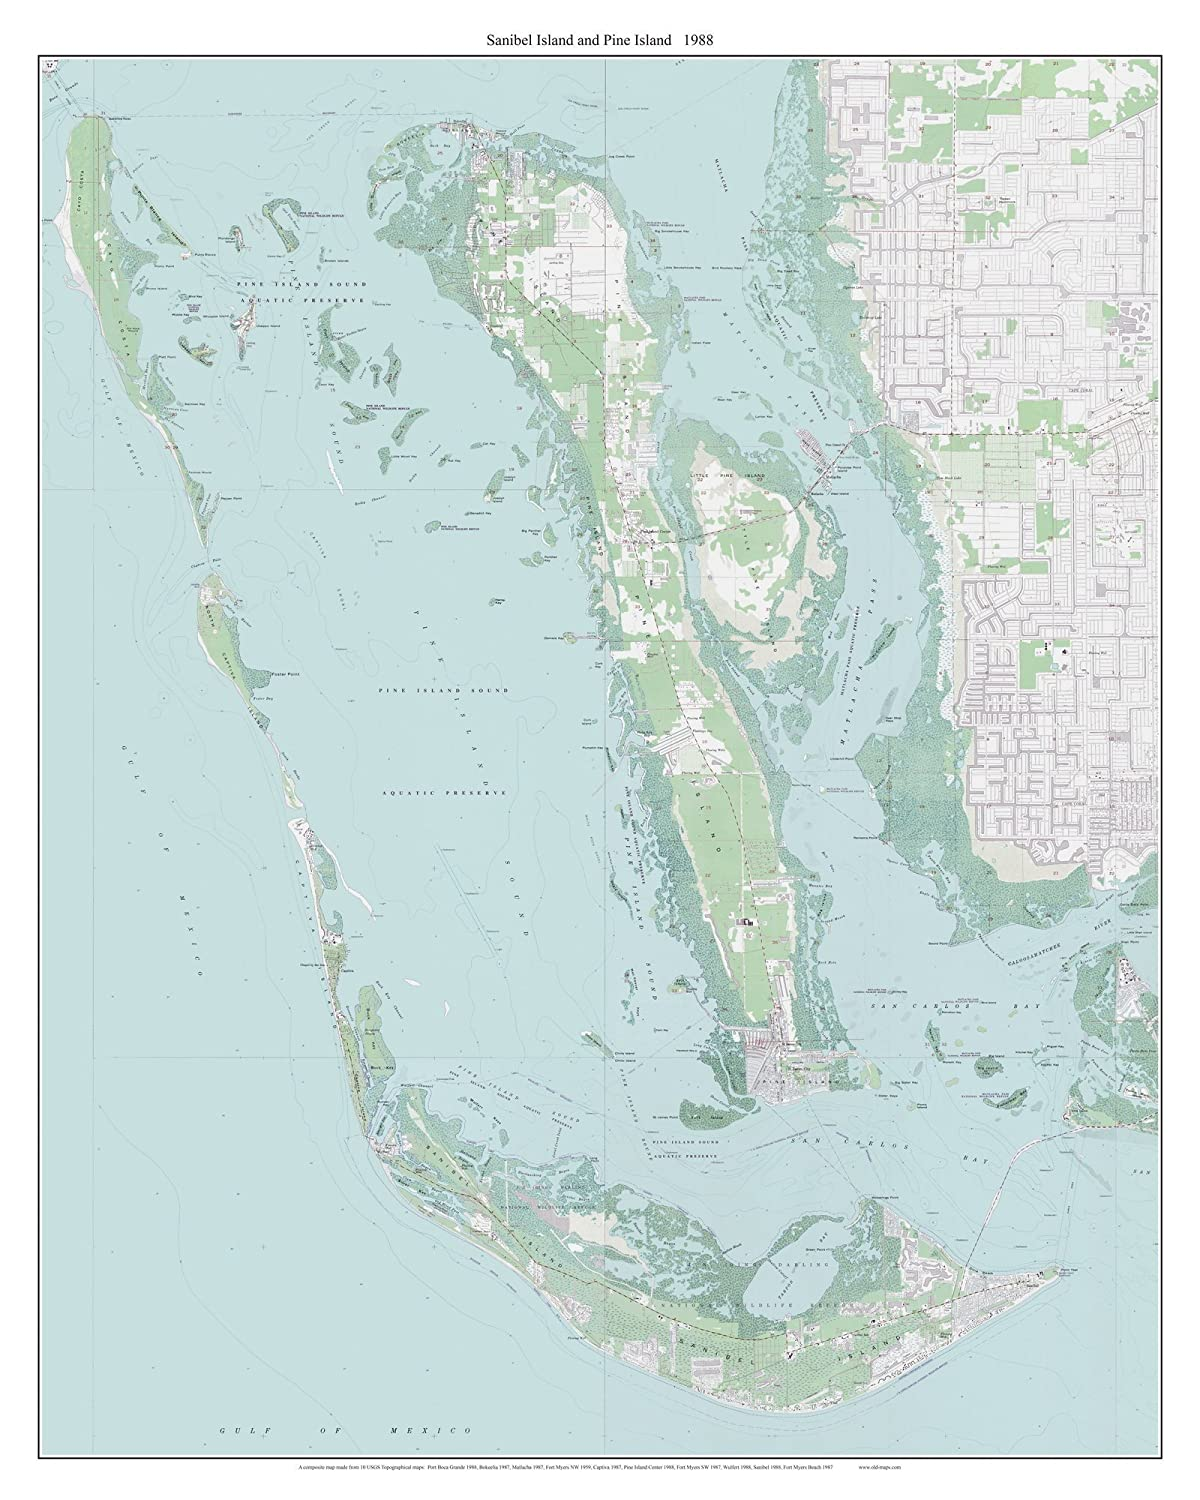 Amazon.com: Sanibel Island and Pine Island Florida 1988 Topo ...